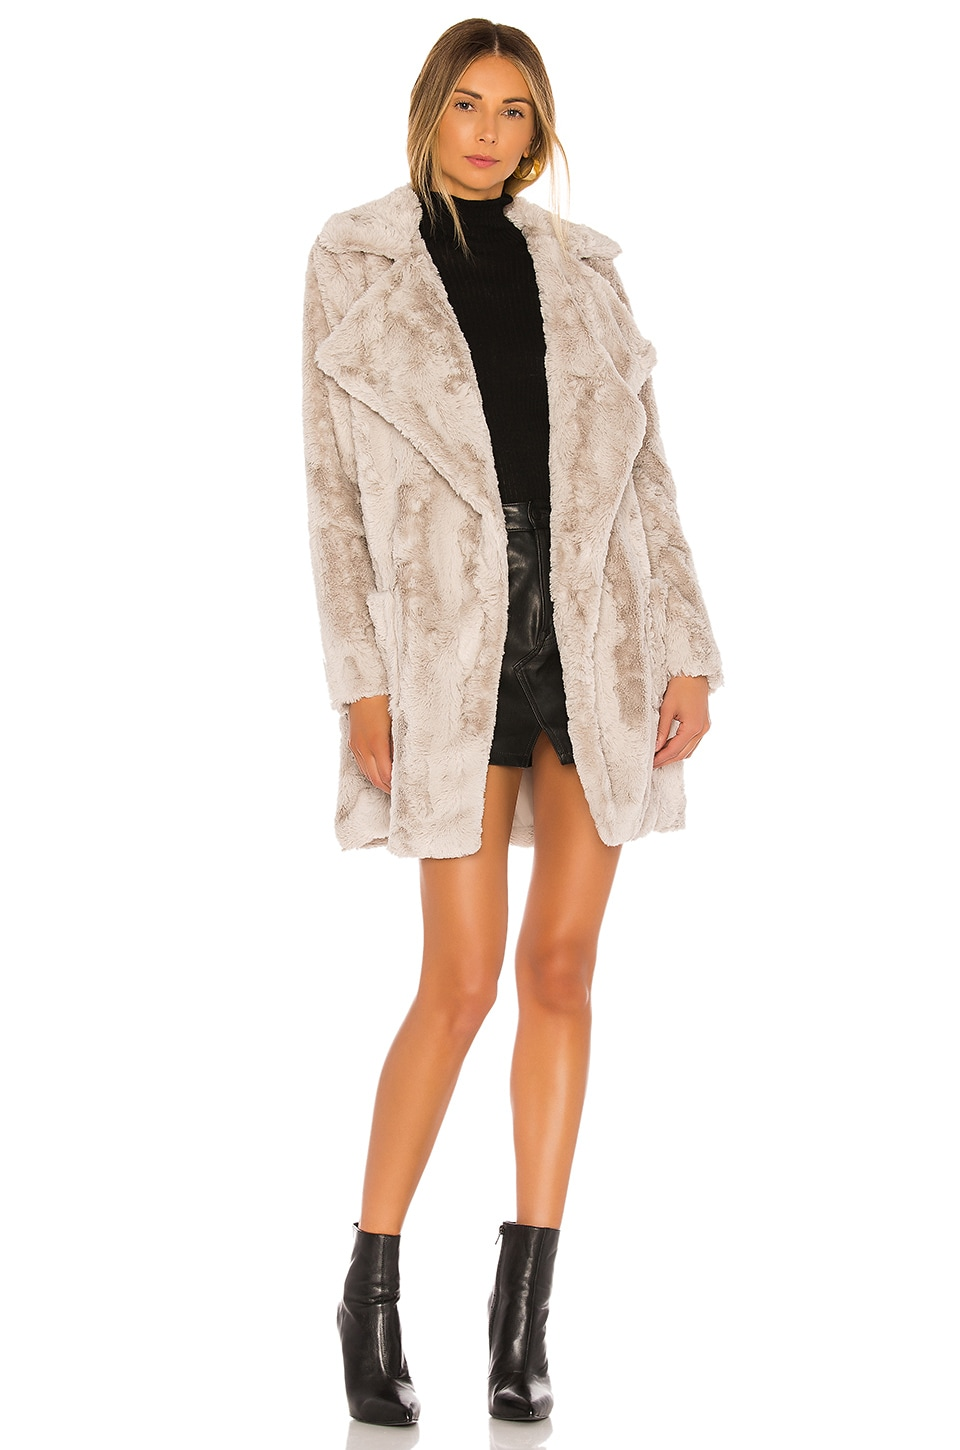 BB Dakota Jack By BB Dakota Shear Factor Faux Fur Coat in Toffee